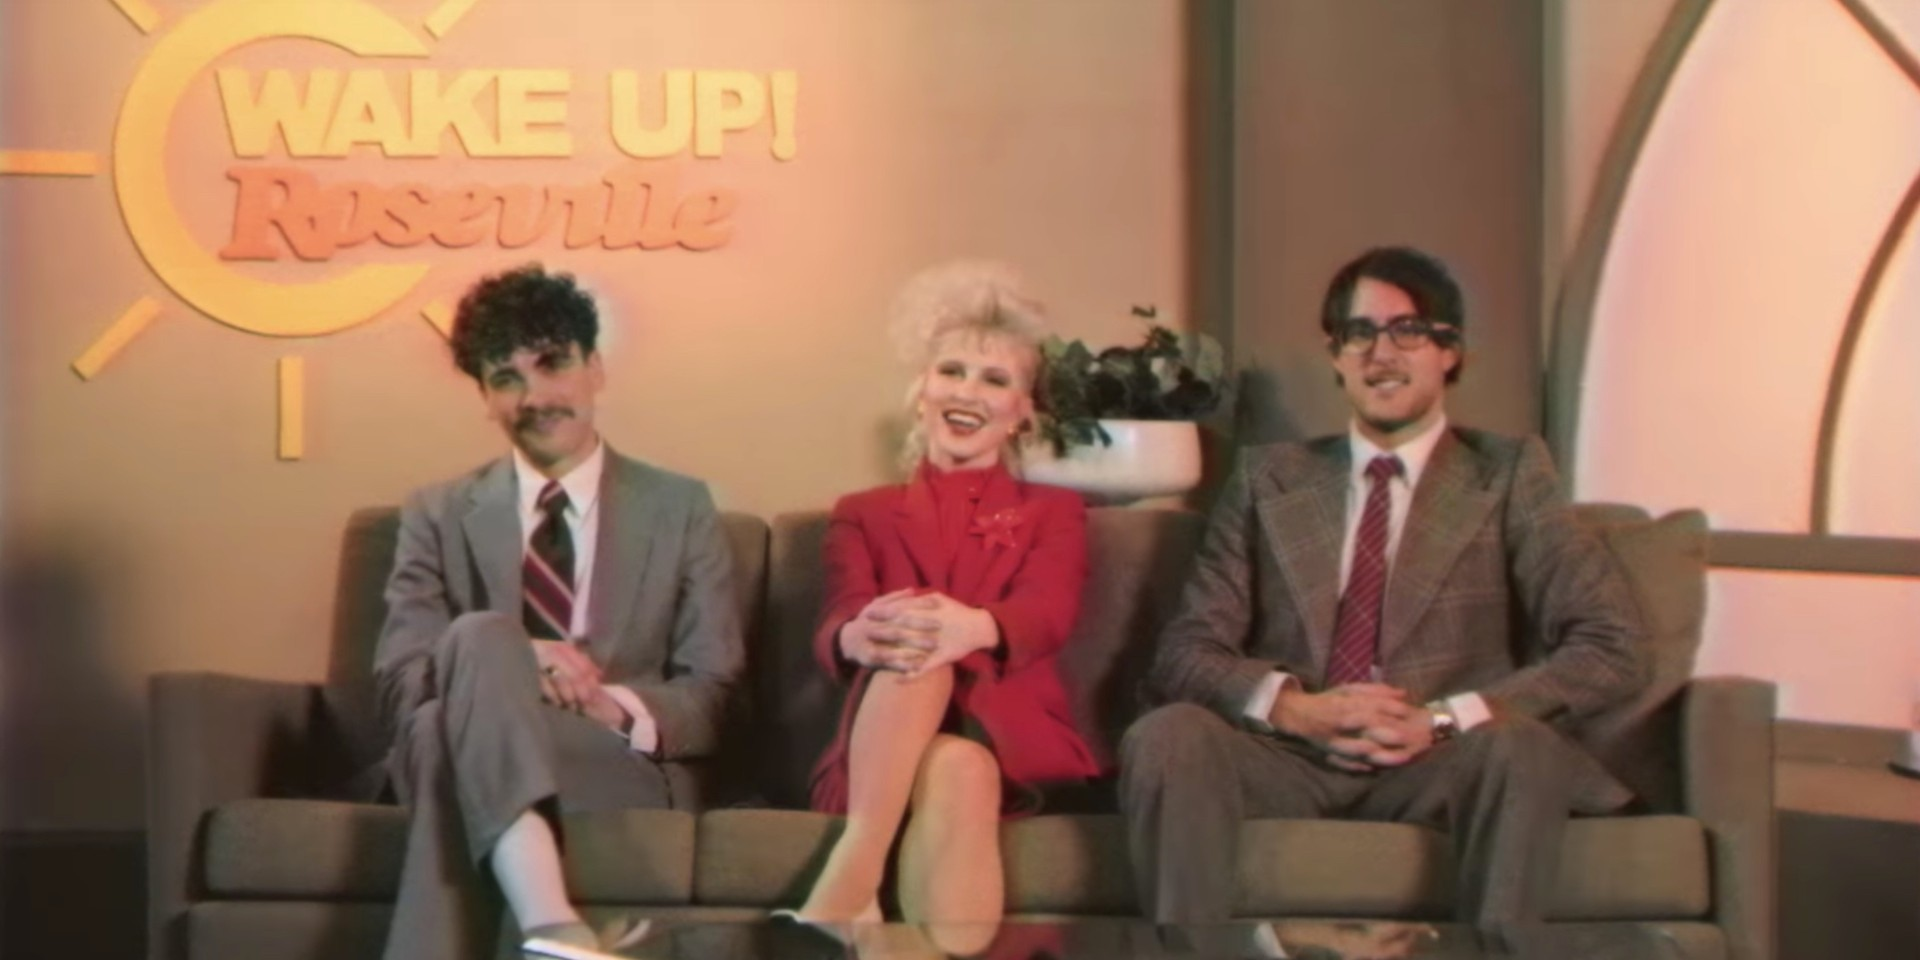 Paramore are television show hosts on the brink of losing it in the 'Rose-Colored Boy' video – watch